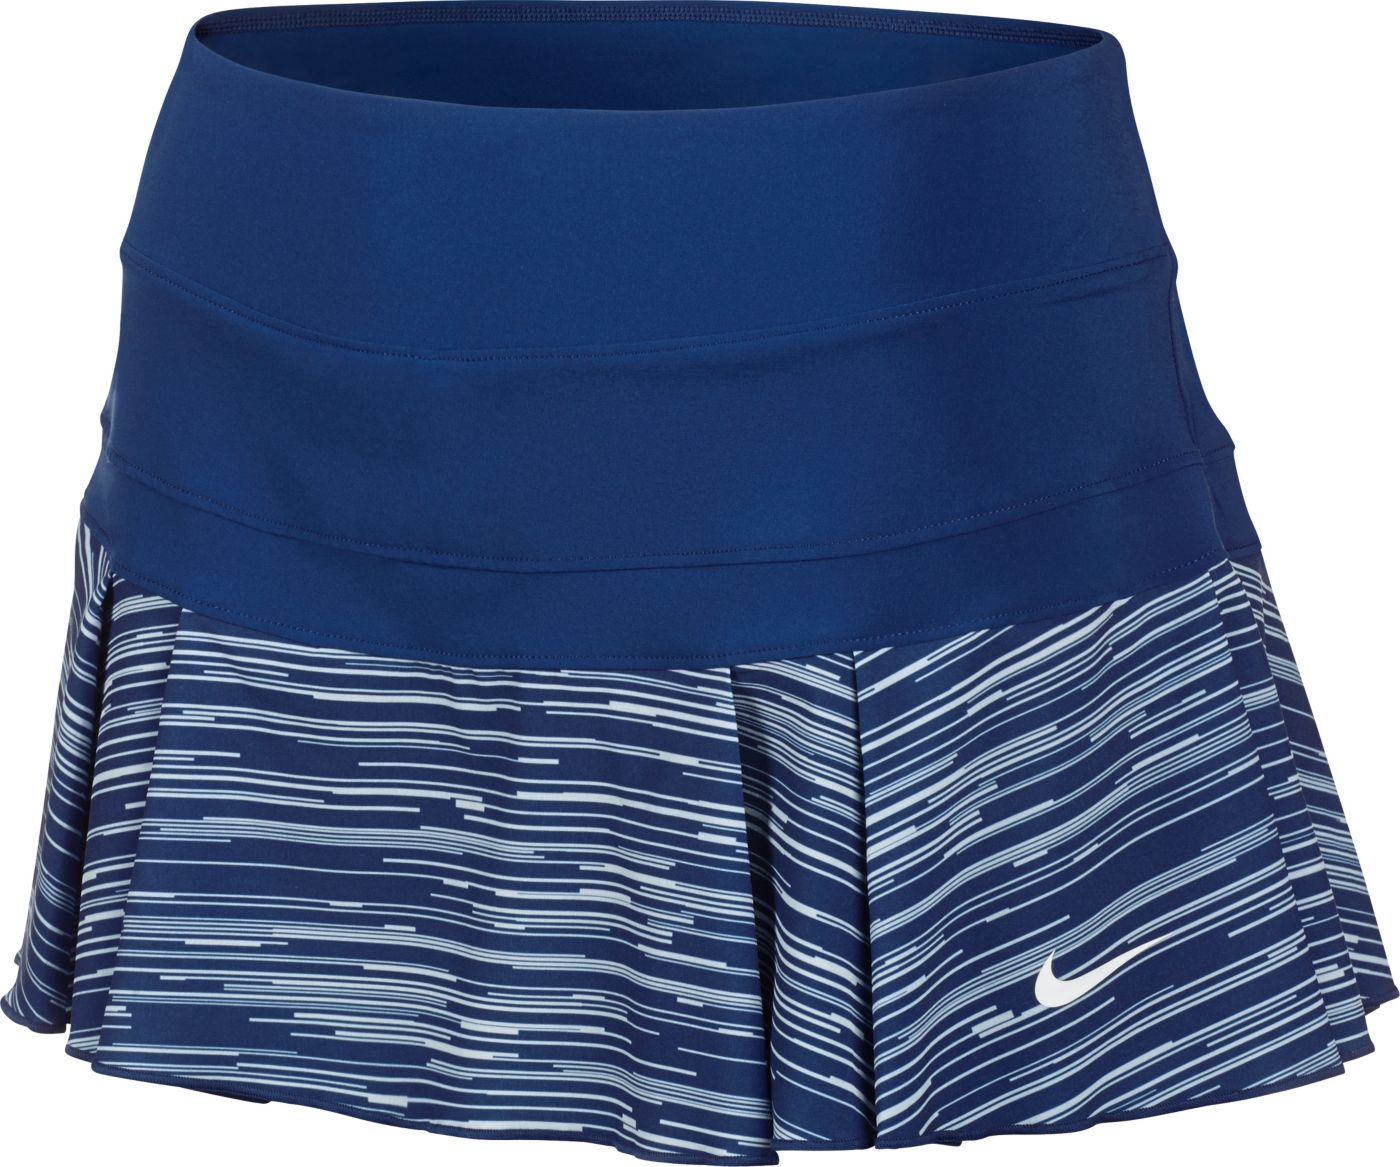 Nike Women's Victory Printed Pleated Tennis Skirt